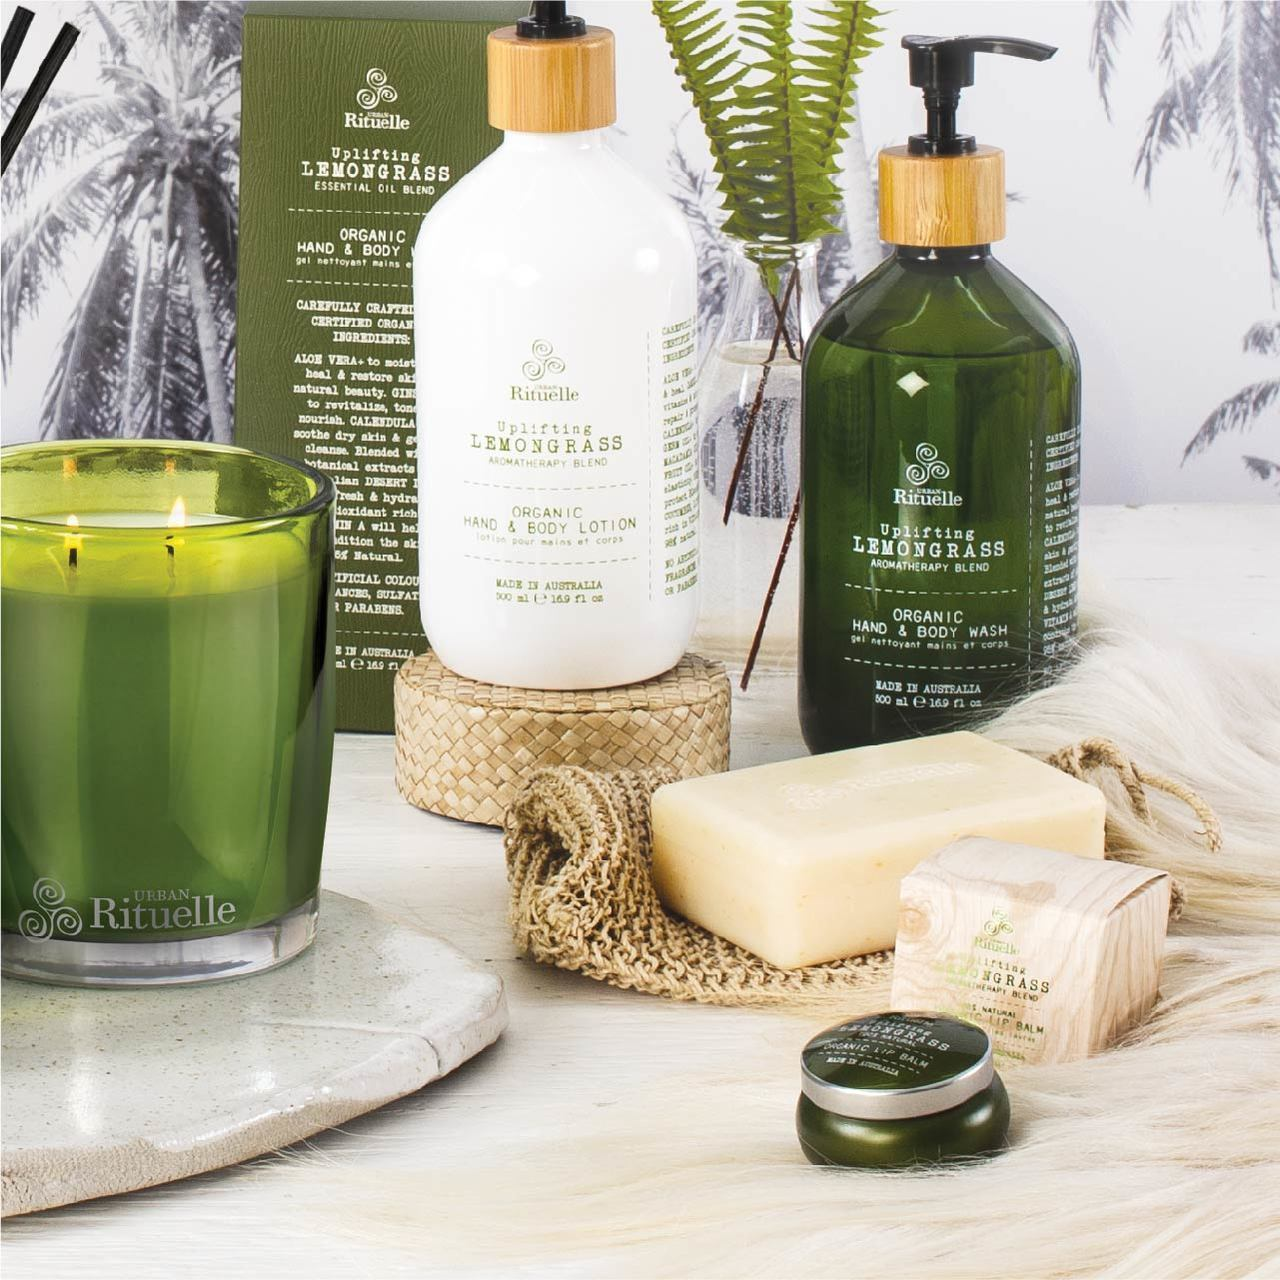 Urban Rituelle Flourish Organics Lemongrass, Lemon Myrtle, Grapefruit & Eucalyptus Organic Hand & Body Lotion